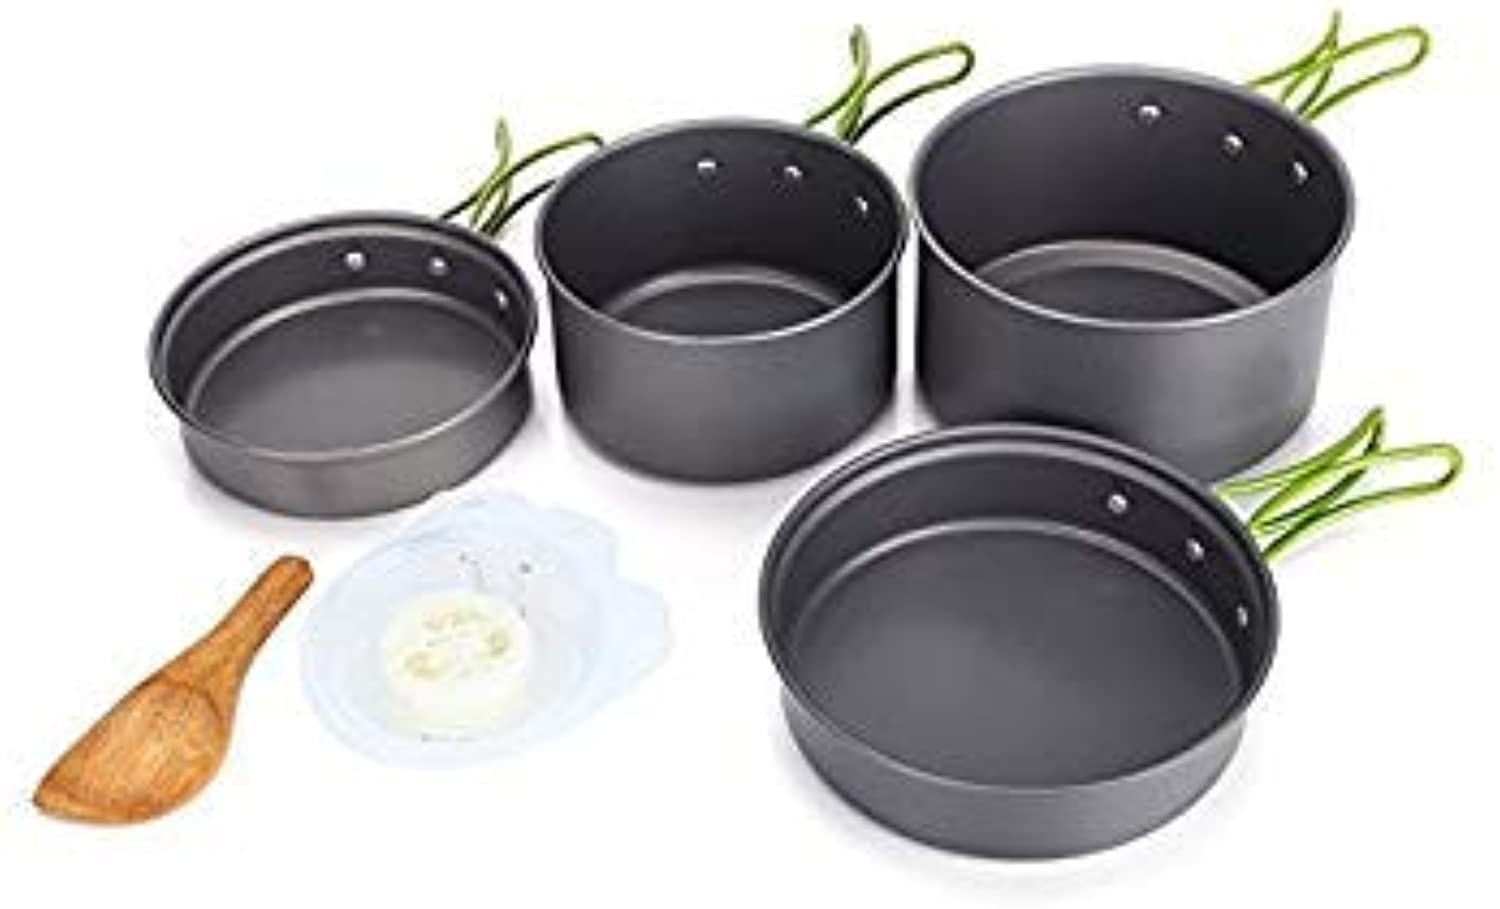 GEOPONICS Outdoor Portable 23 Persons Cooking Pot Bowl Pan Set Camping Picnic Tableware Cookware